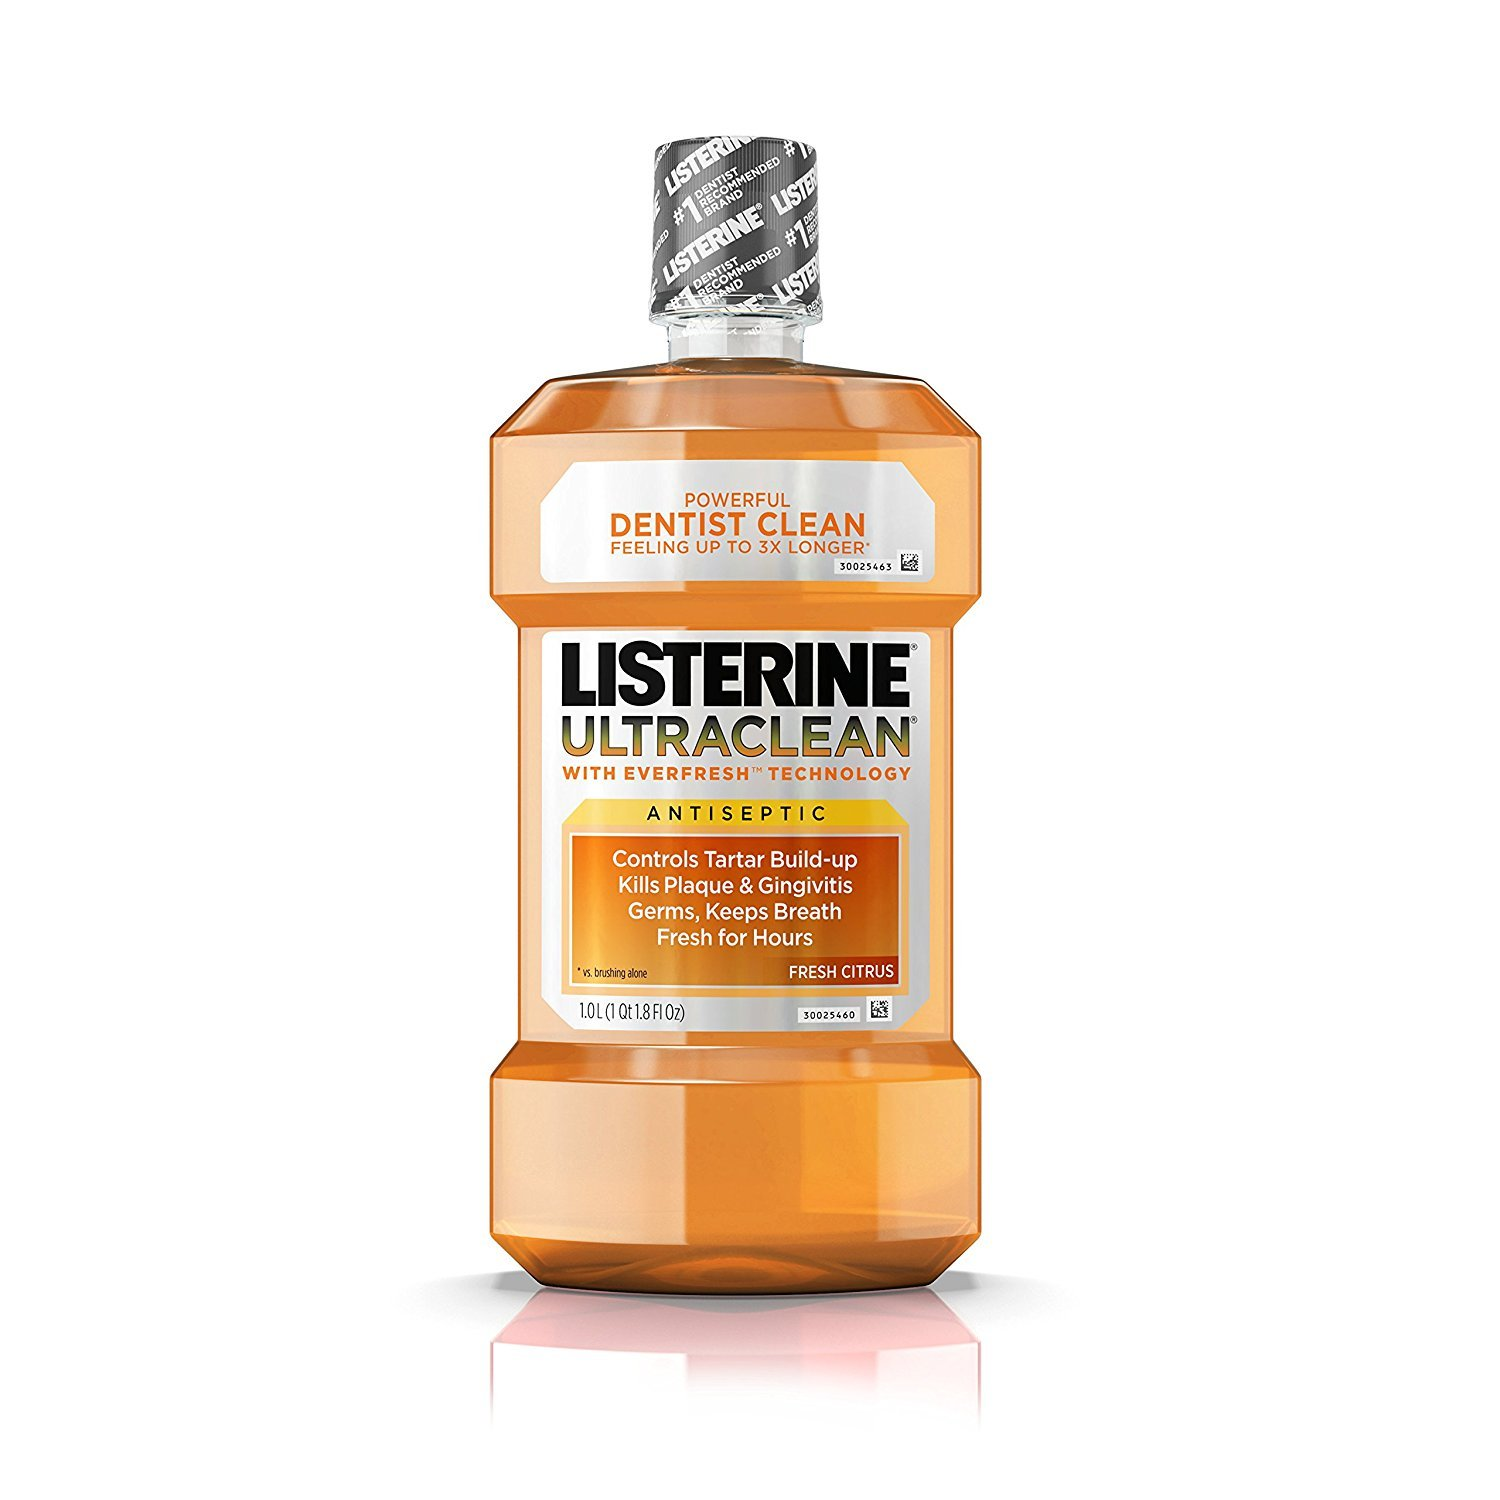 Listerine Ultraclean Fresh Citrus Antiseptic Mouthwash, 1 L - Pack of 5